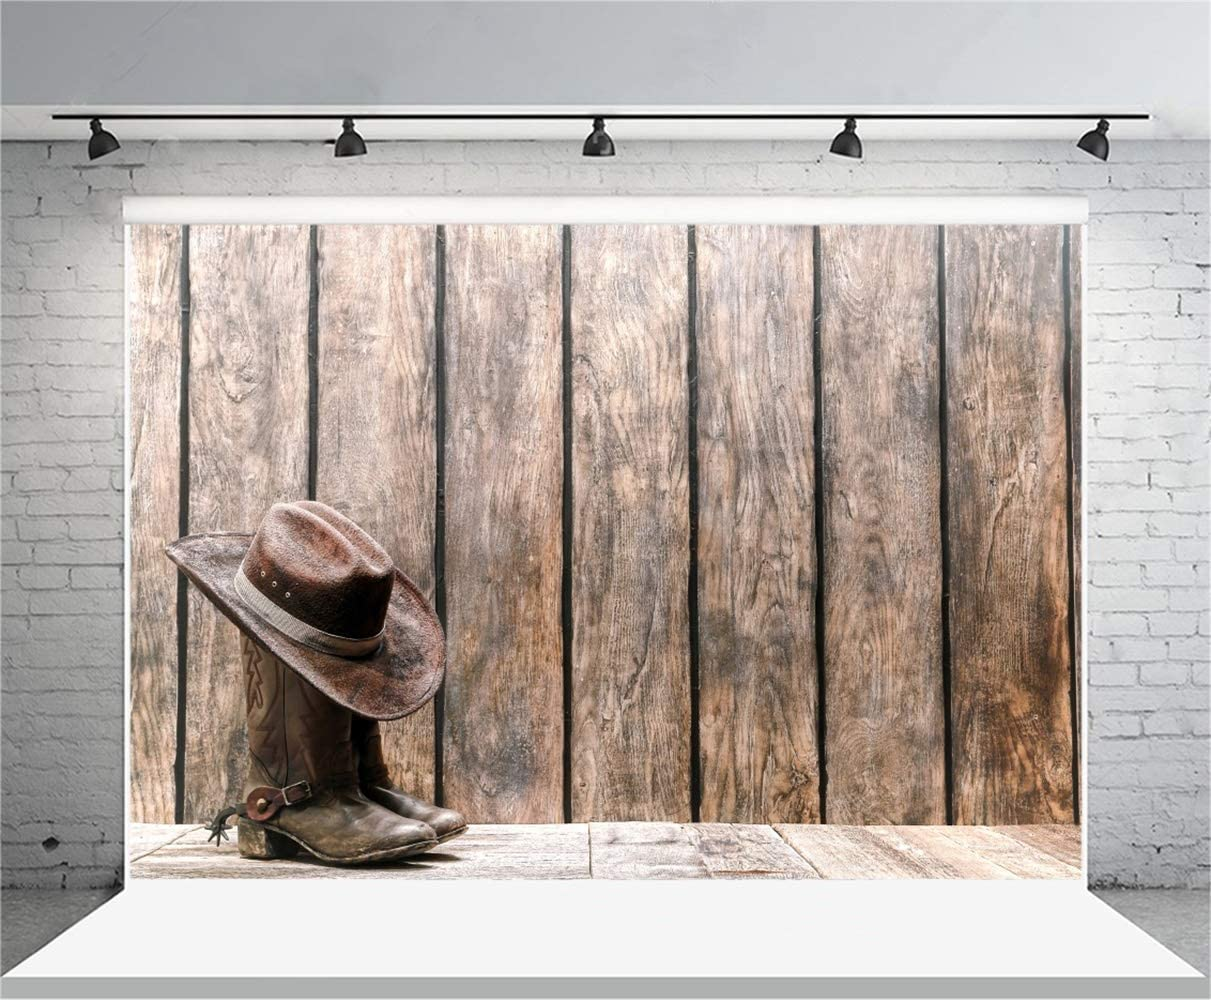 Western Countryside Background 10x6.5ft Polyester Photography Backdrops West Cowboy Hat Dirty Leather Boots Vintage Vertical Striped Wooden Barn Wall Background Farmer Personal Portraits Shooting